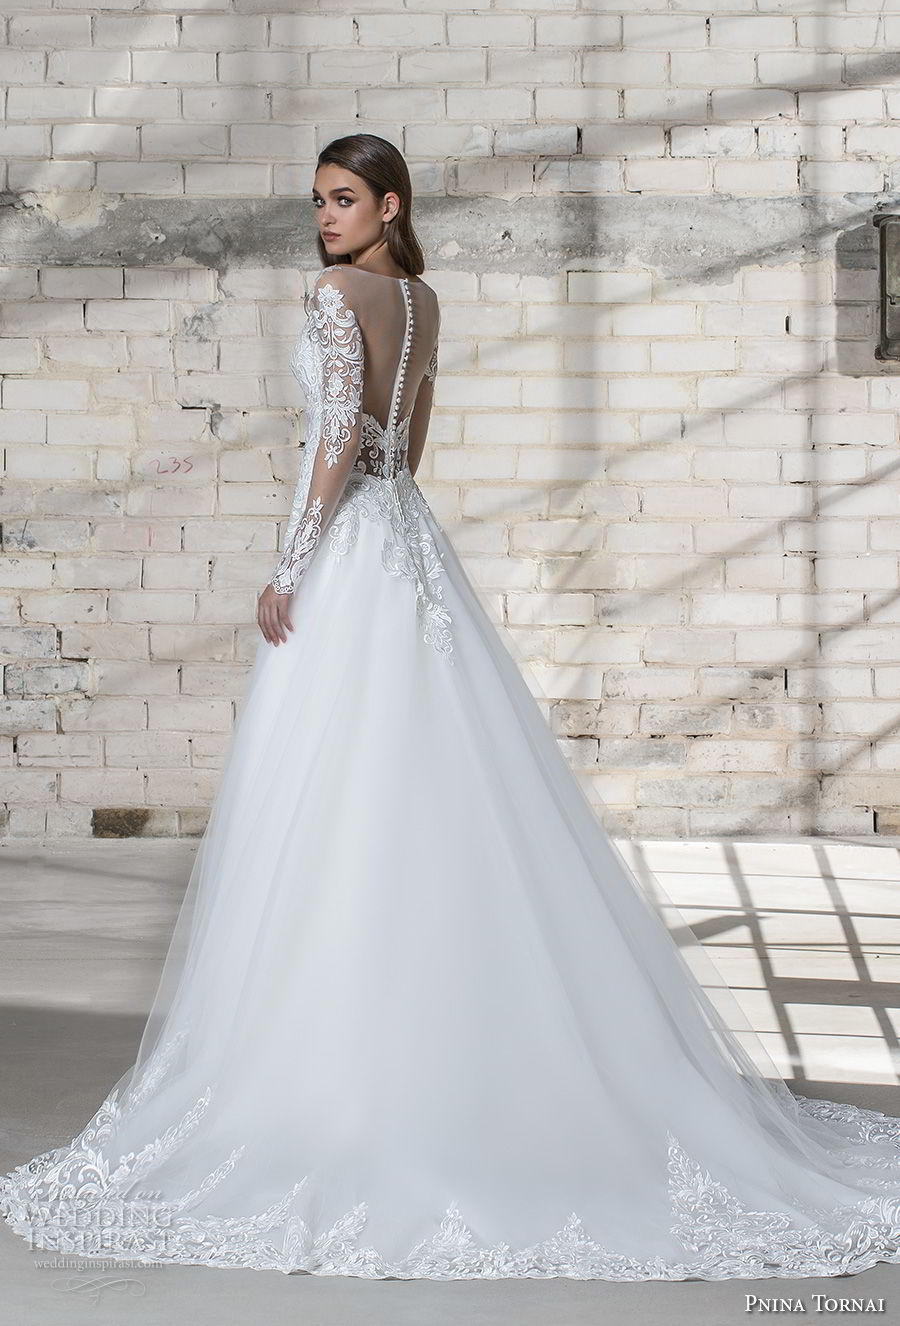 pnina tornai 2019 love bridal long sleeves deep plunging v neck heavily embellished bodice elegant princess sheath wedding dress a line overskirt sheer button back chapel train (10) bv